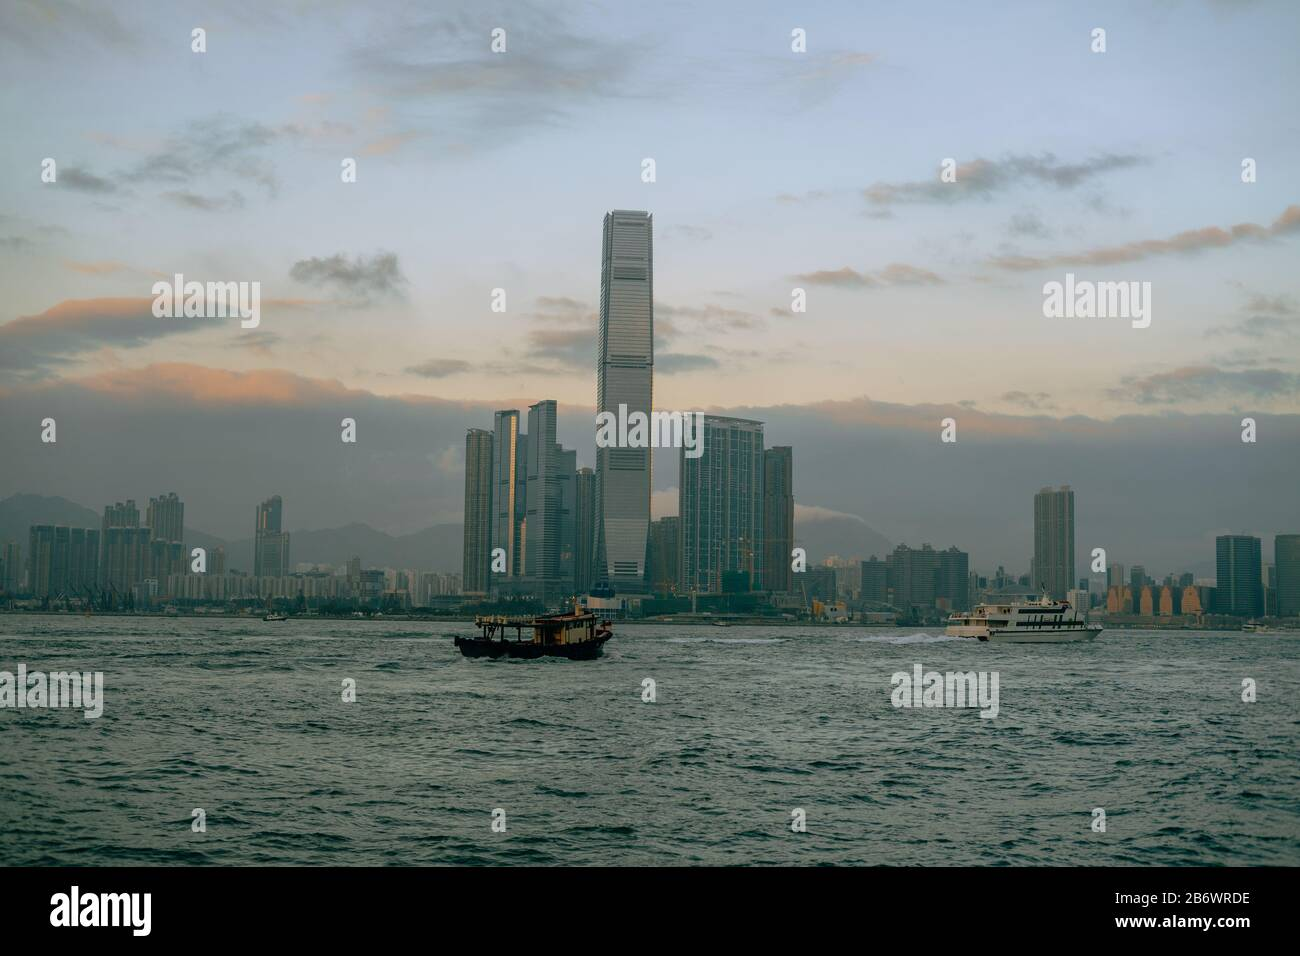 Hong Kong skyline at sunset with boats passing through the river Stock Photo